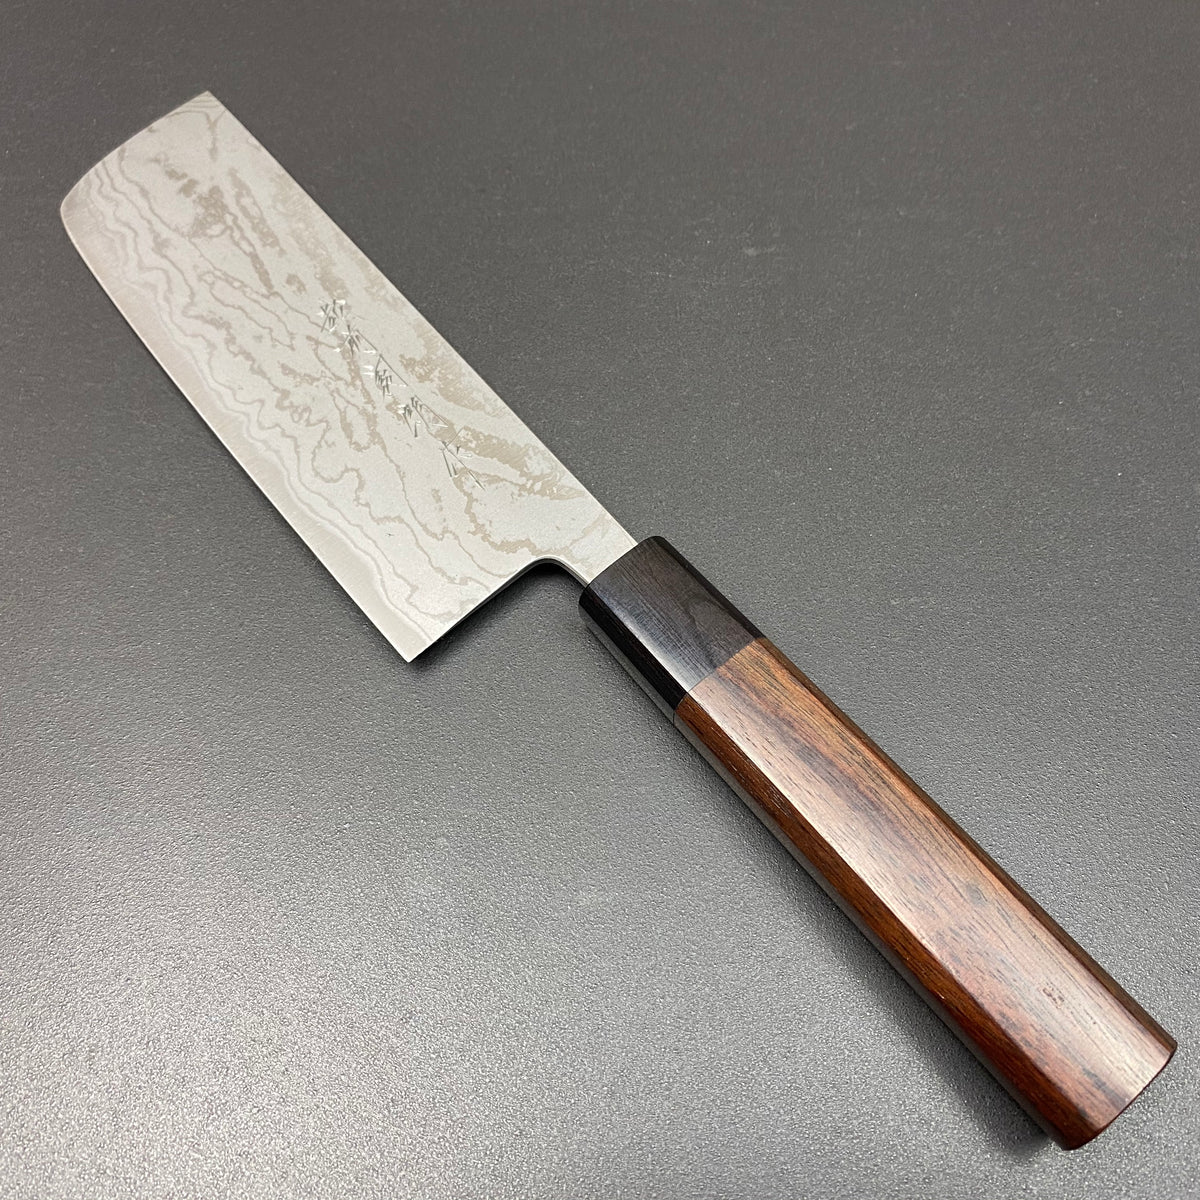 Nakiri knife, Shirogami 2 iron-clad, Suminigashi finish, 165mm- Kamo